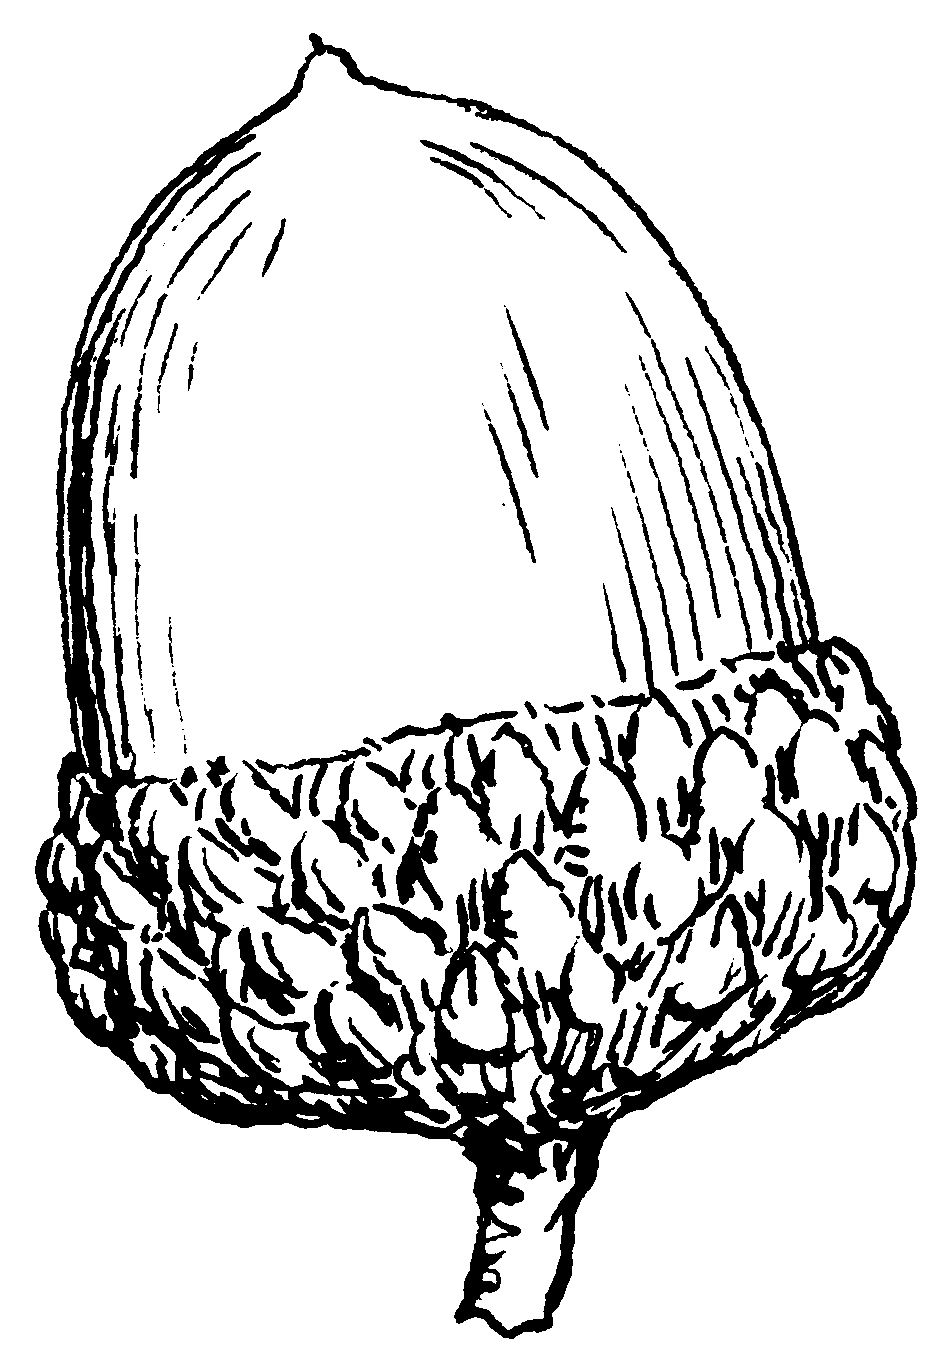 Acorn Drawing at GetDrawings.com | Free for personal use Acorn ...